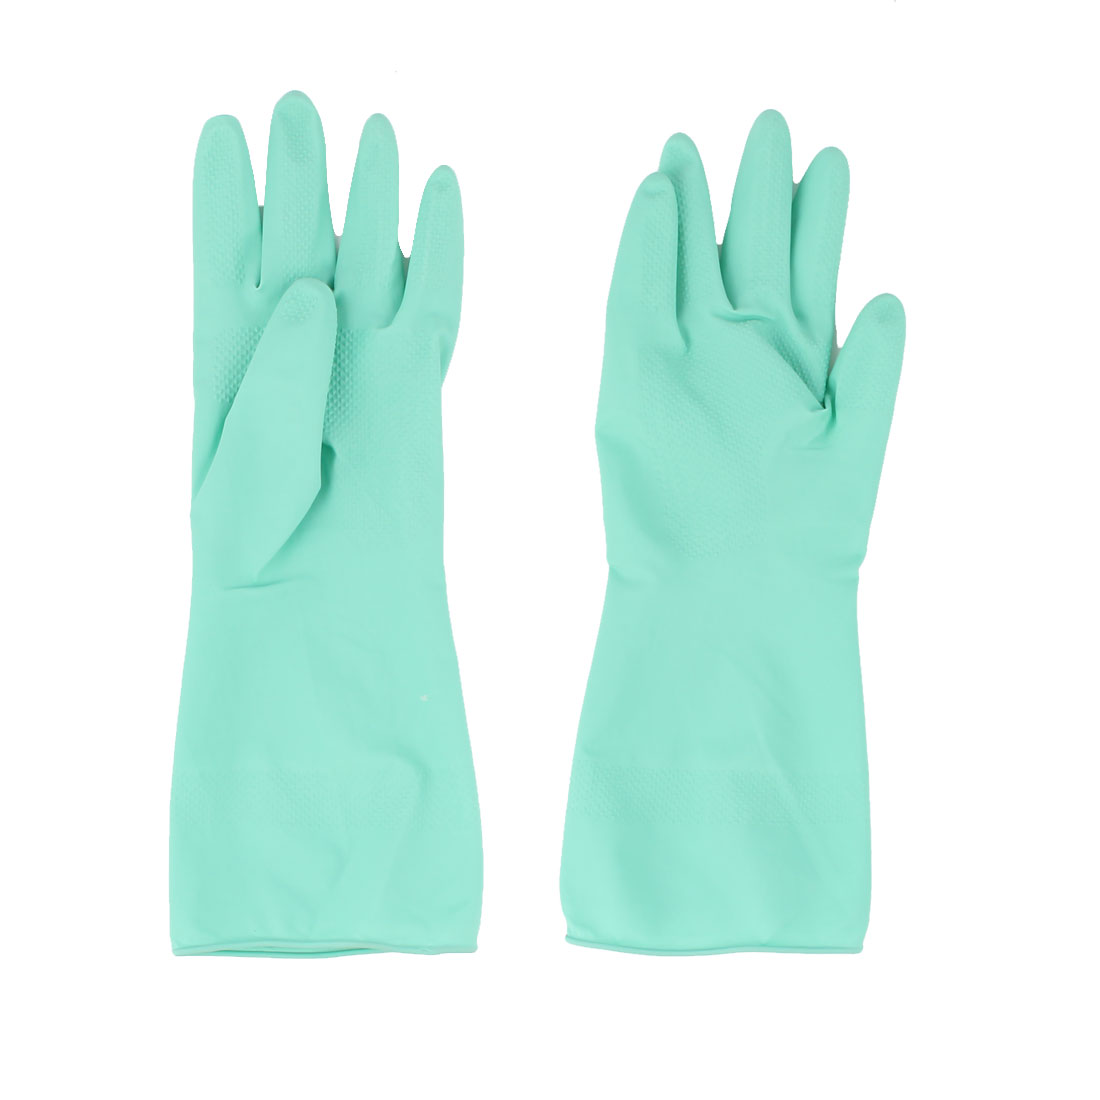 Garden Kitchen Dish Cleaning Washing Laundry Water Resistant Gloves Green Pair